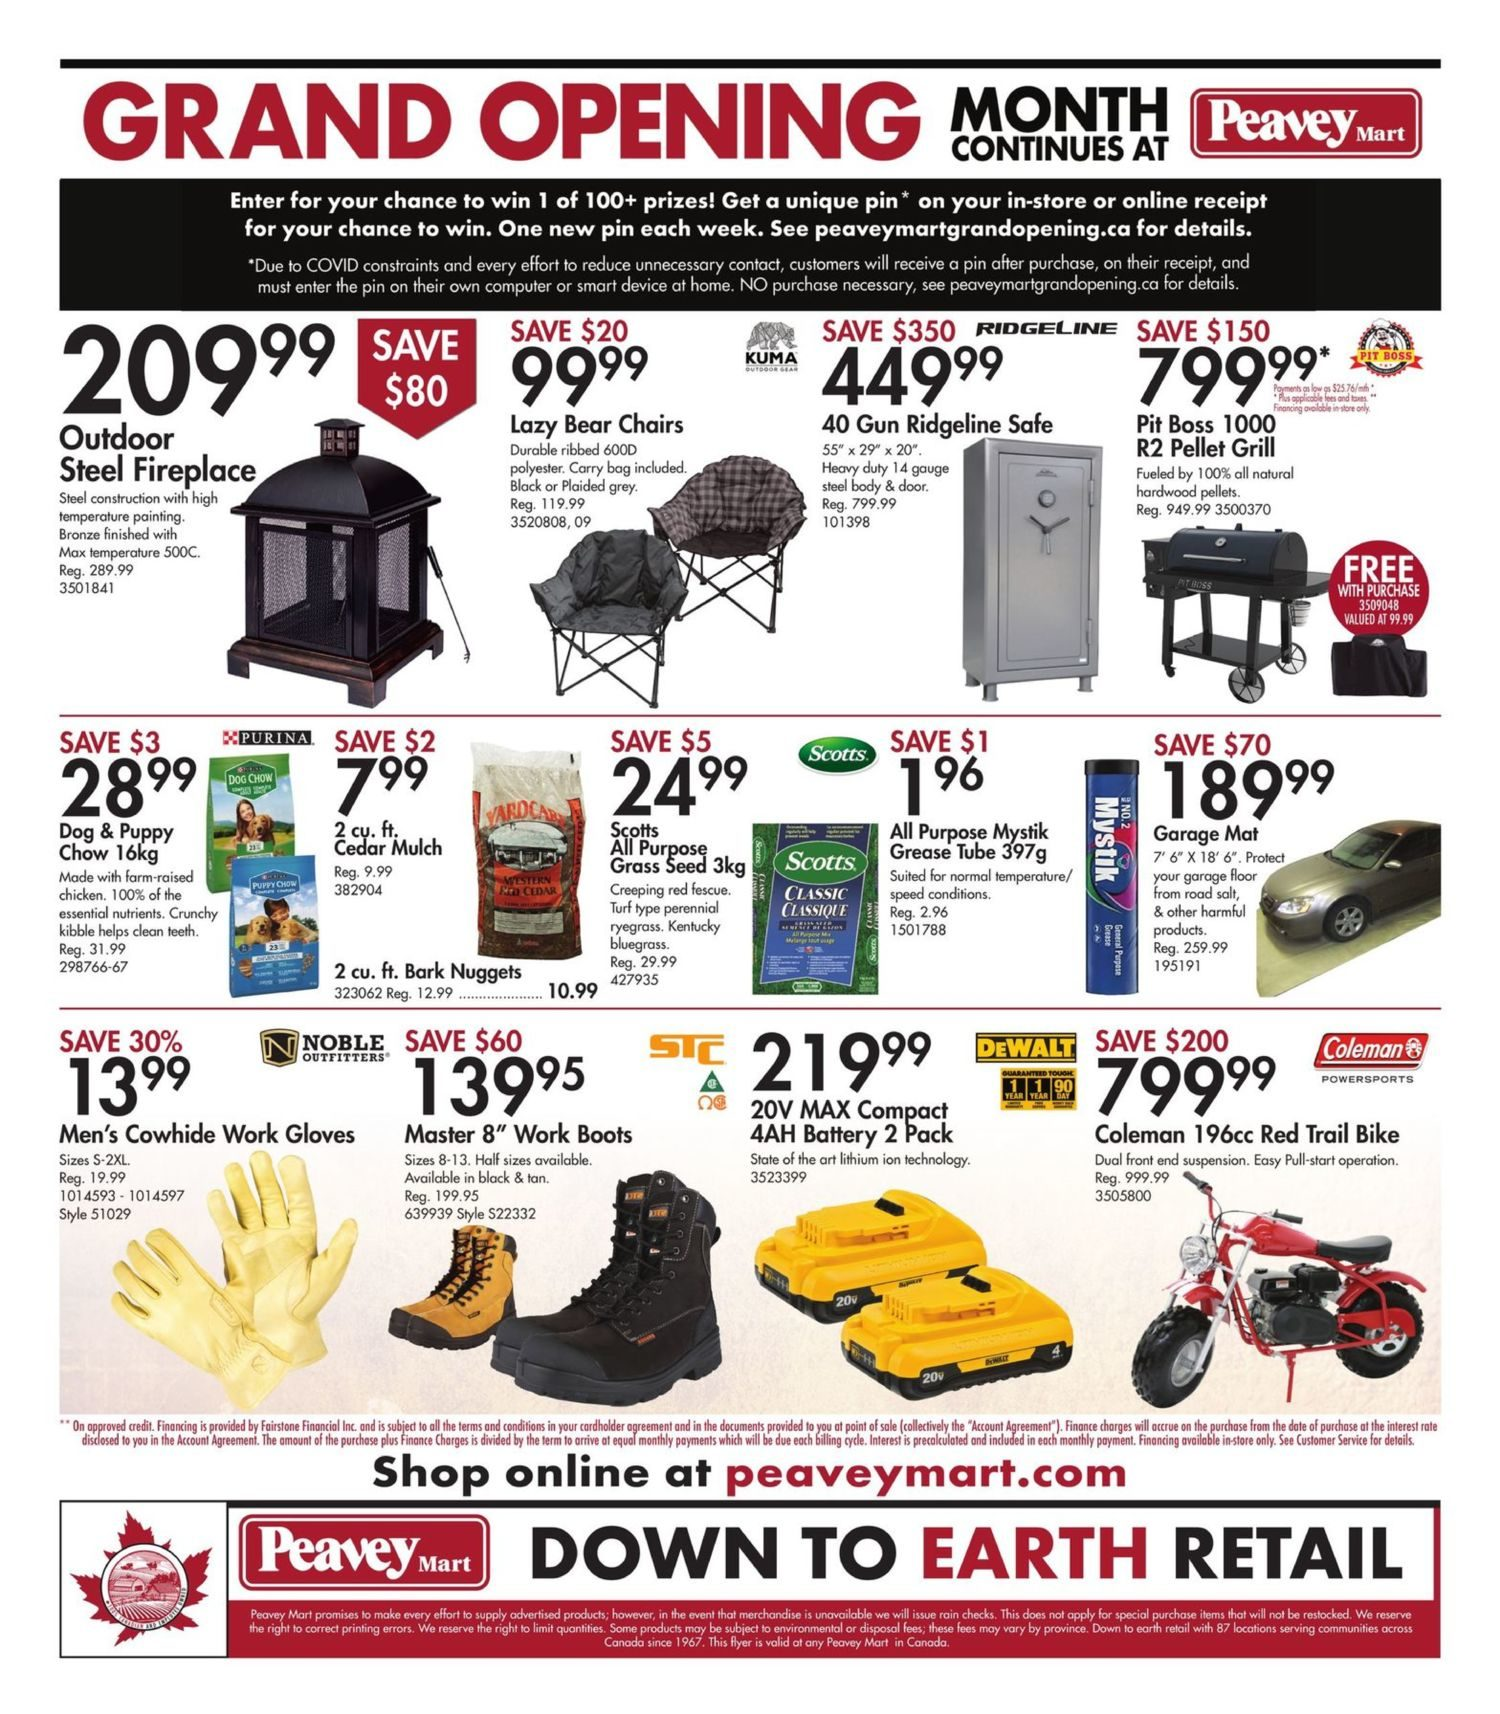 Peavey Mart - Weekly Flyer Specials - National Grand Opening Celebration - Page 19